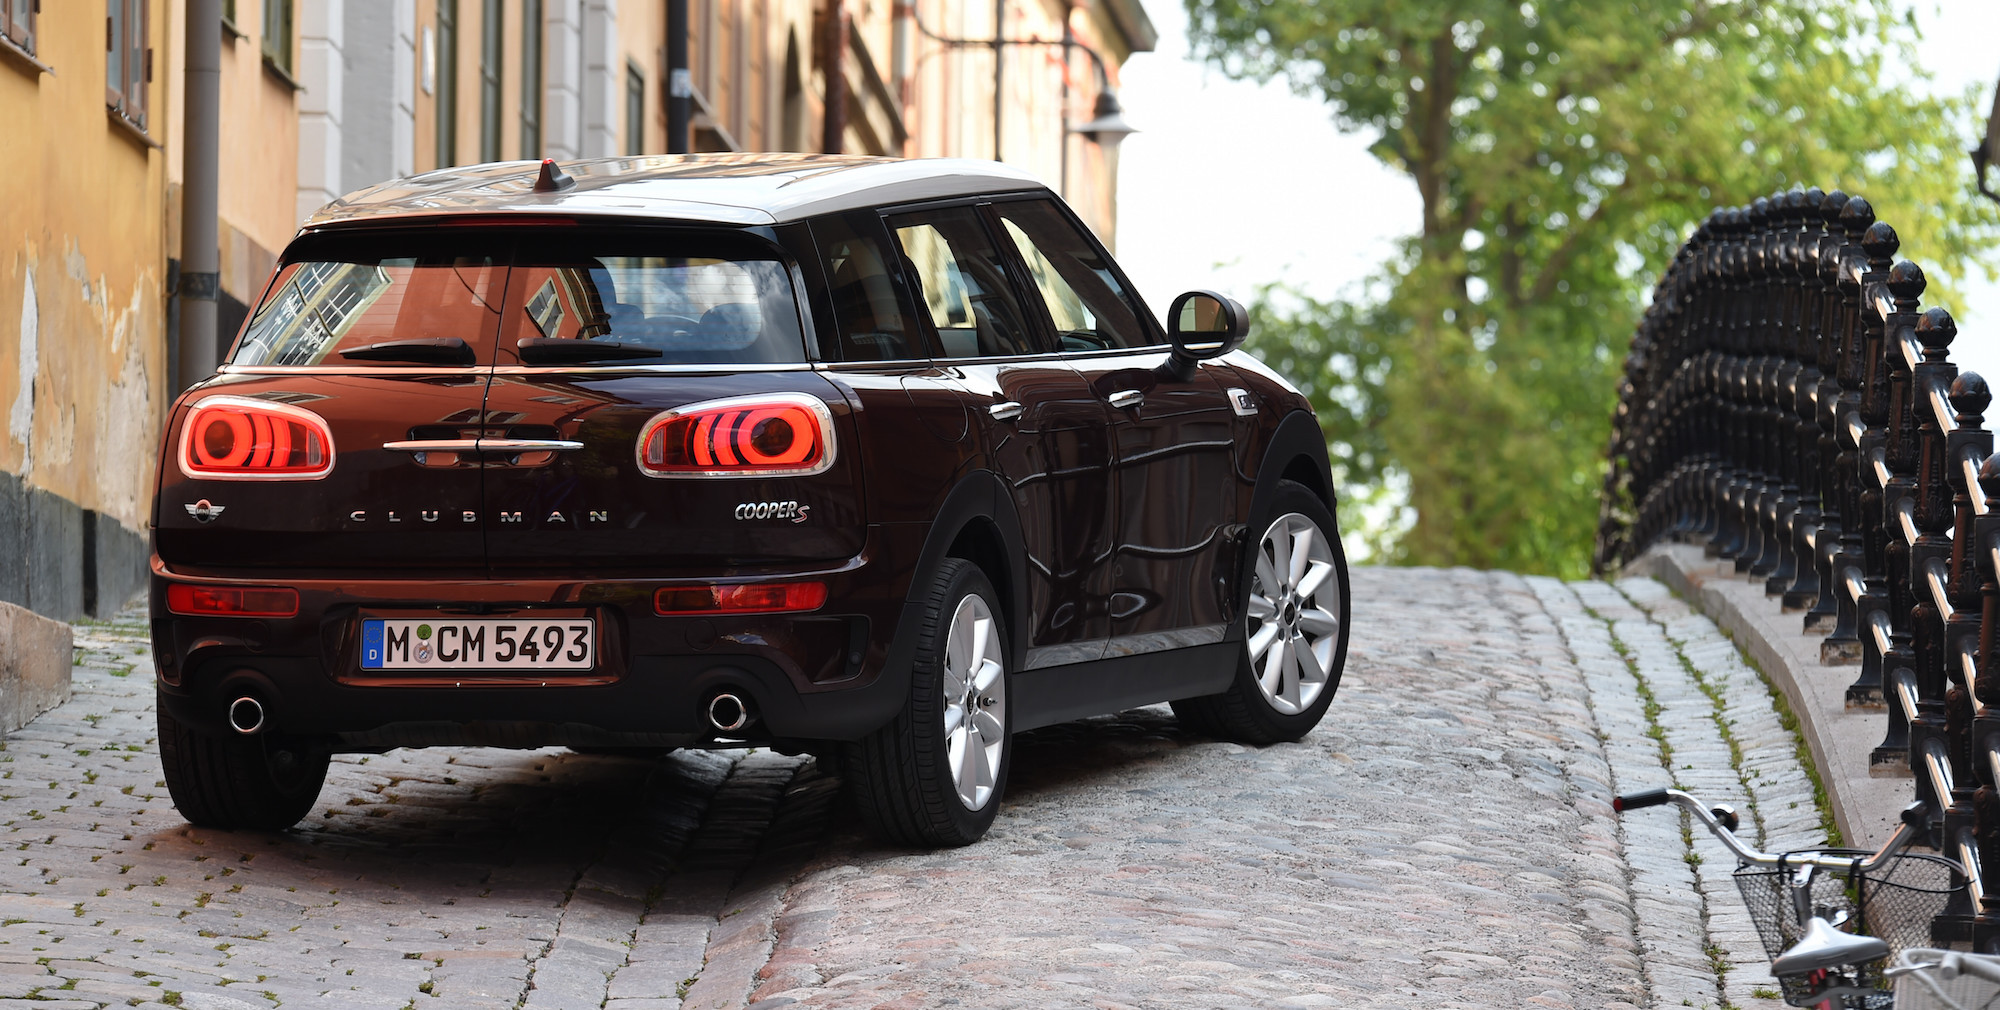 2016 Mini Cooper S Clubman Rear (Photo 12 of 17)